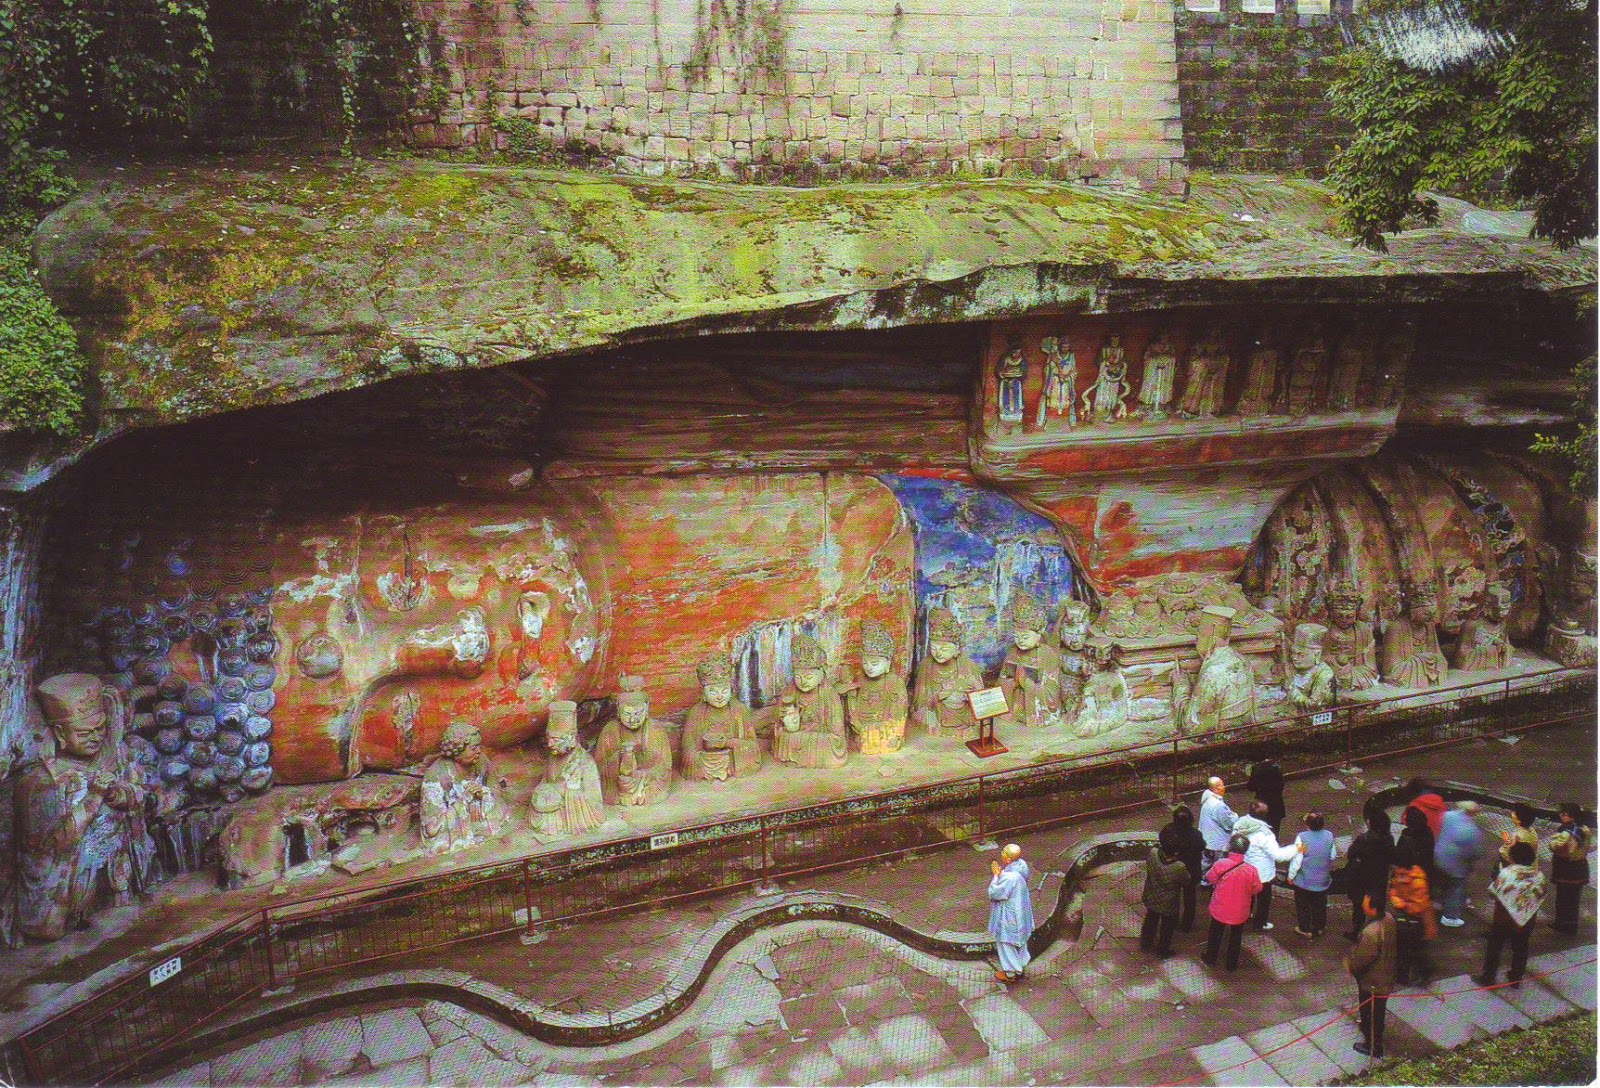 The world in postcards sabine s dazu rock carvings